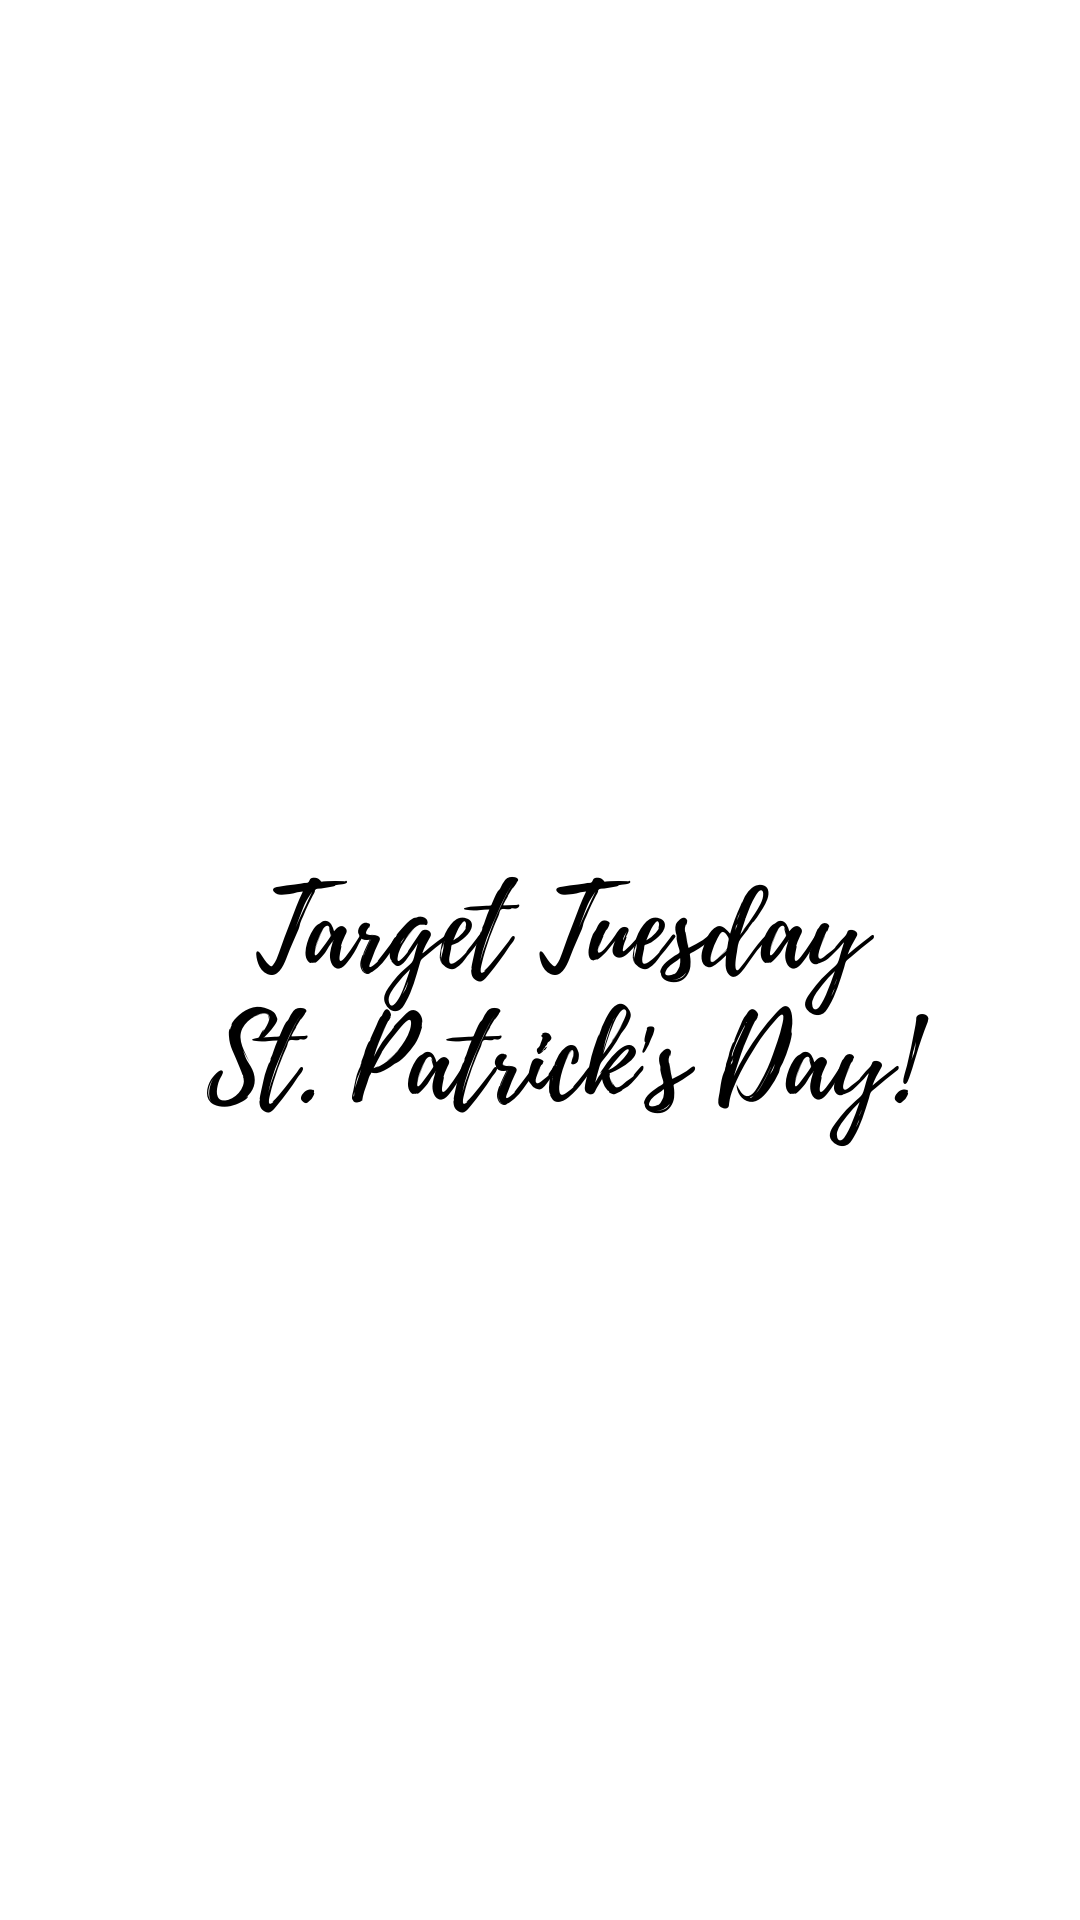 Target Tuesday St. Patrick's Day!